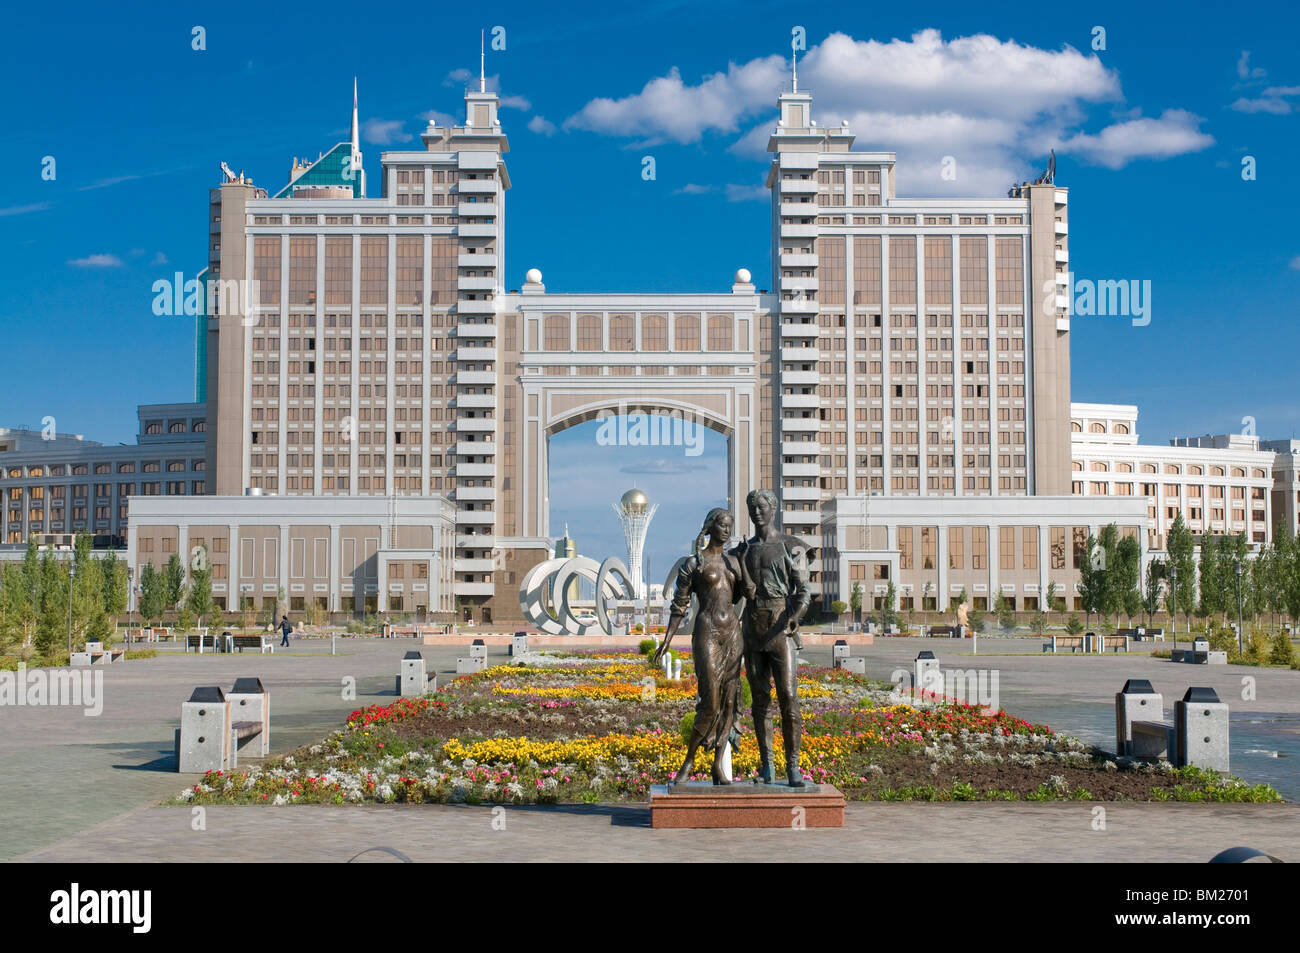 The Kay Munay Gaz building and the Bayterek monument, Astana, Kazakhstan, Central Asia - Stock Image